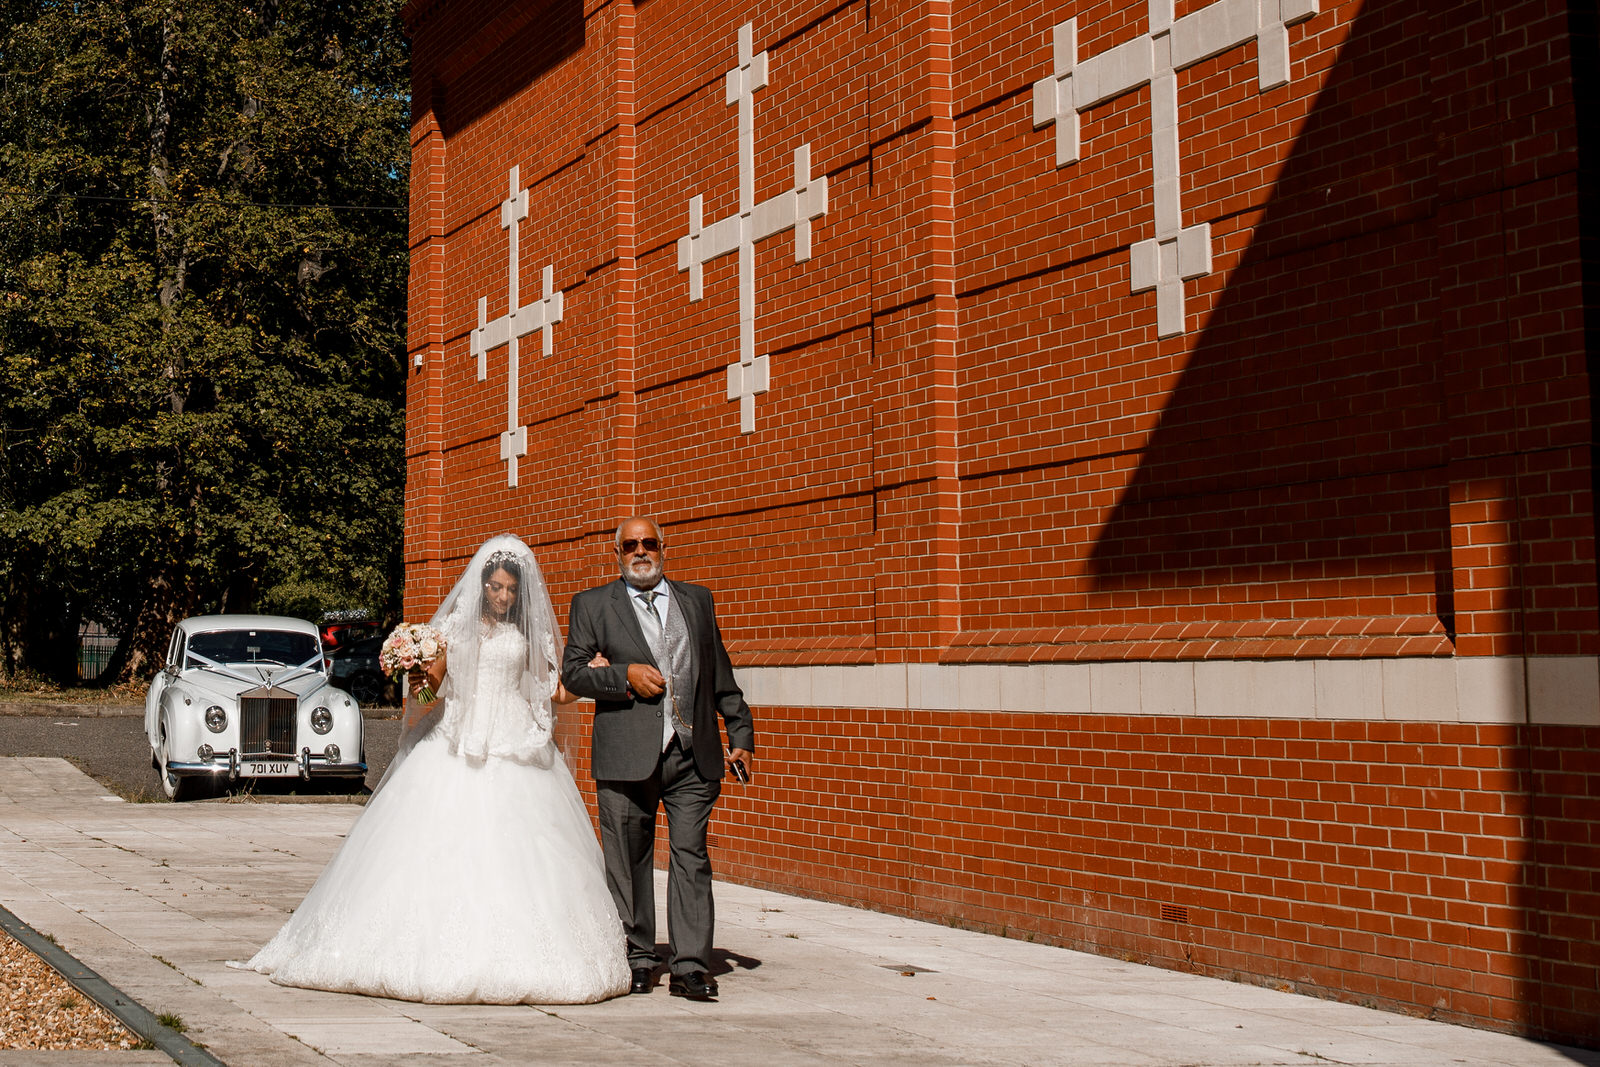 bride walking with father to church